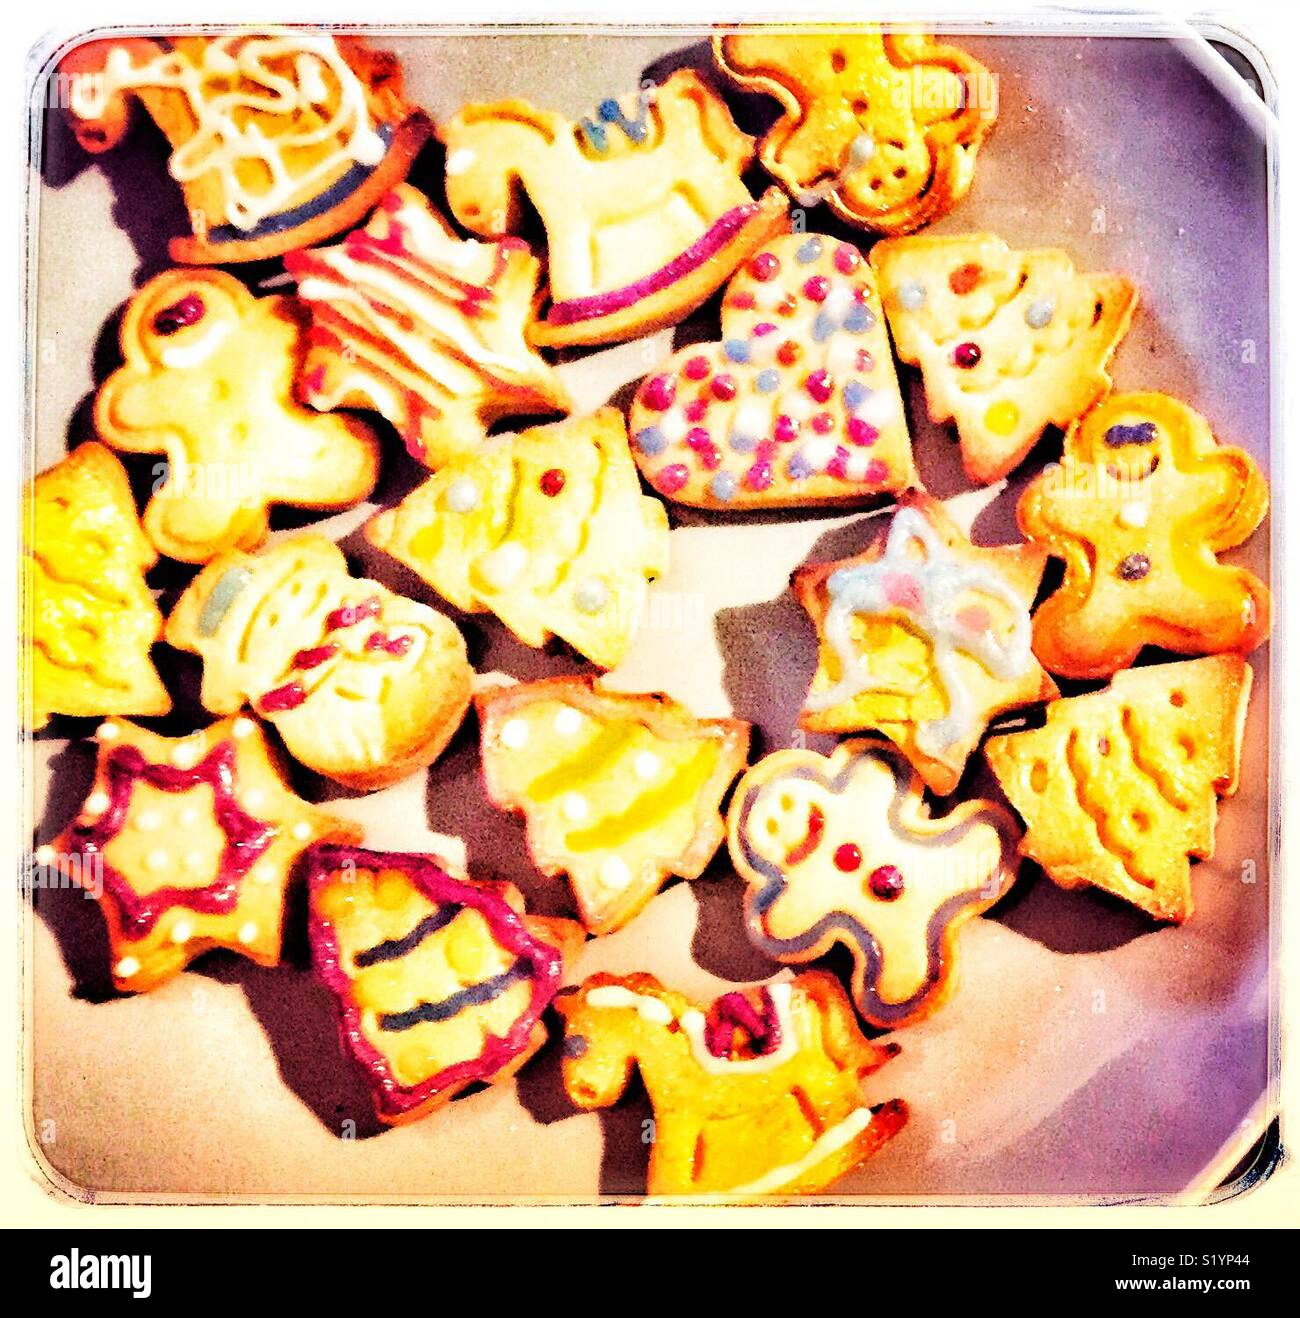 Homemade Xmas Cookies Quick Things To Do With The Kids Stock Photo